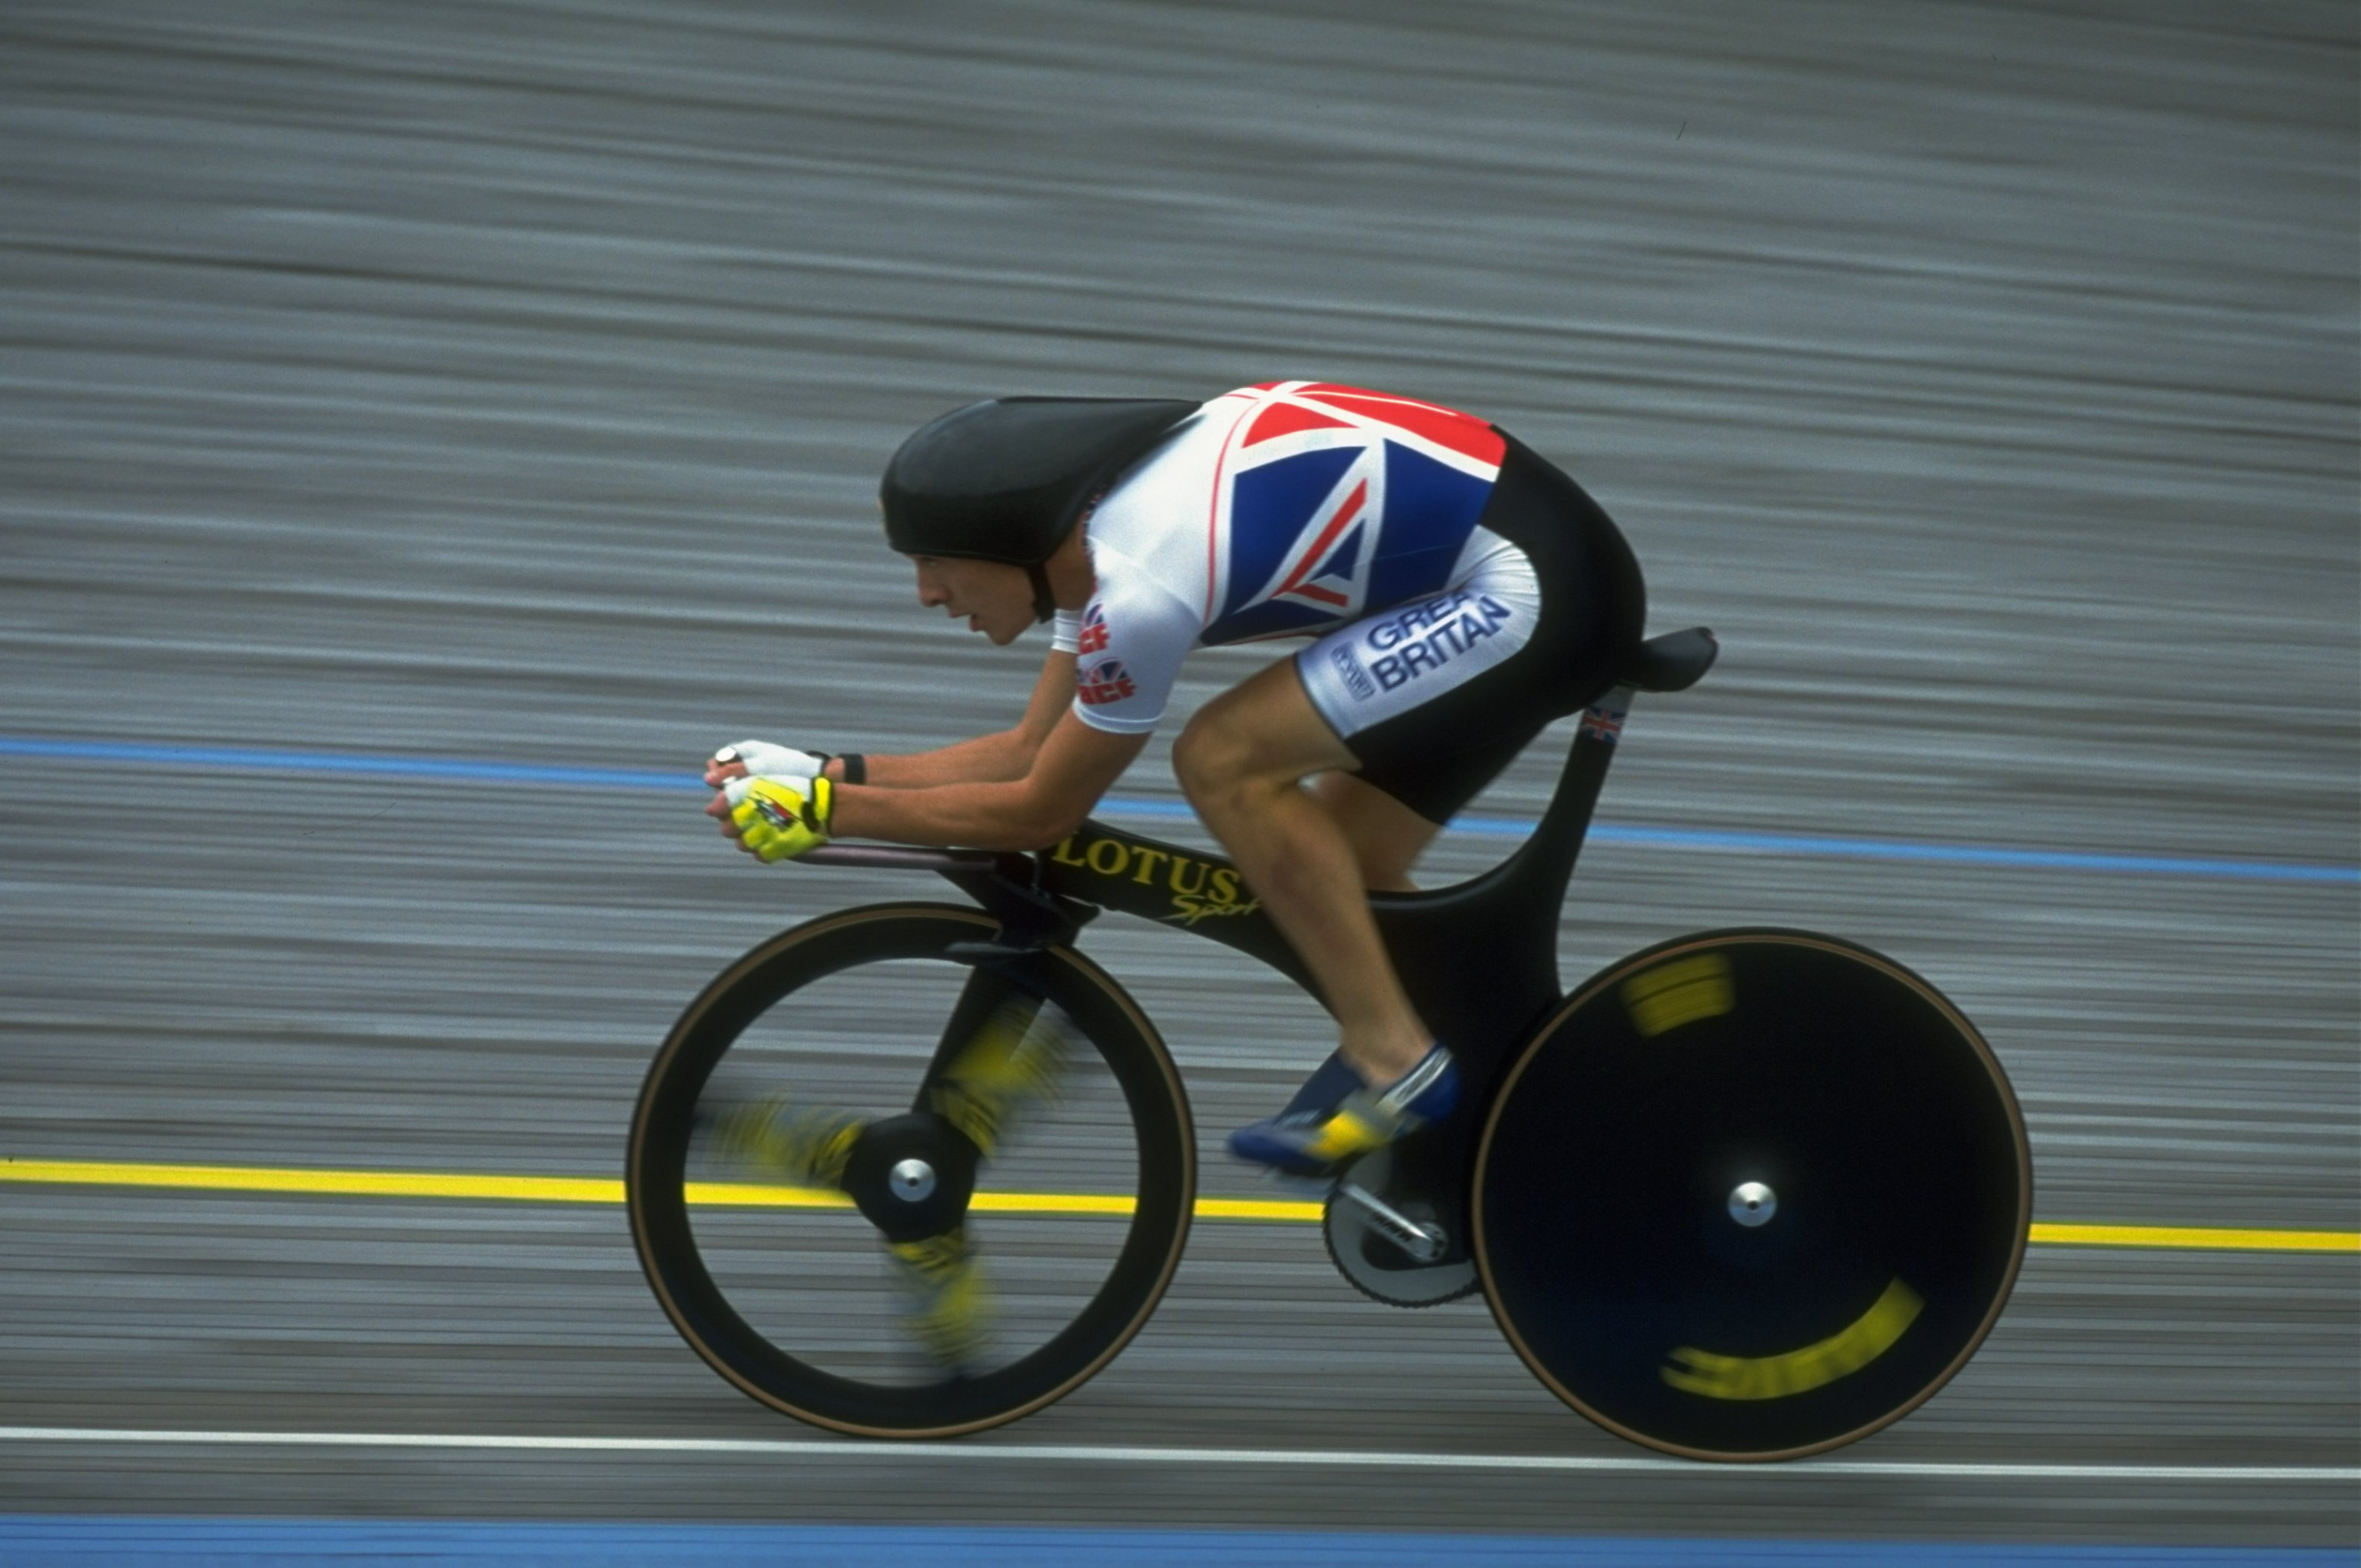 Chris Boardman riding the Lotus bike during the National Cycling Championships in Leicester in August 1992